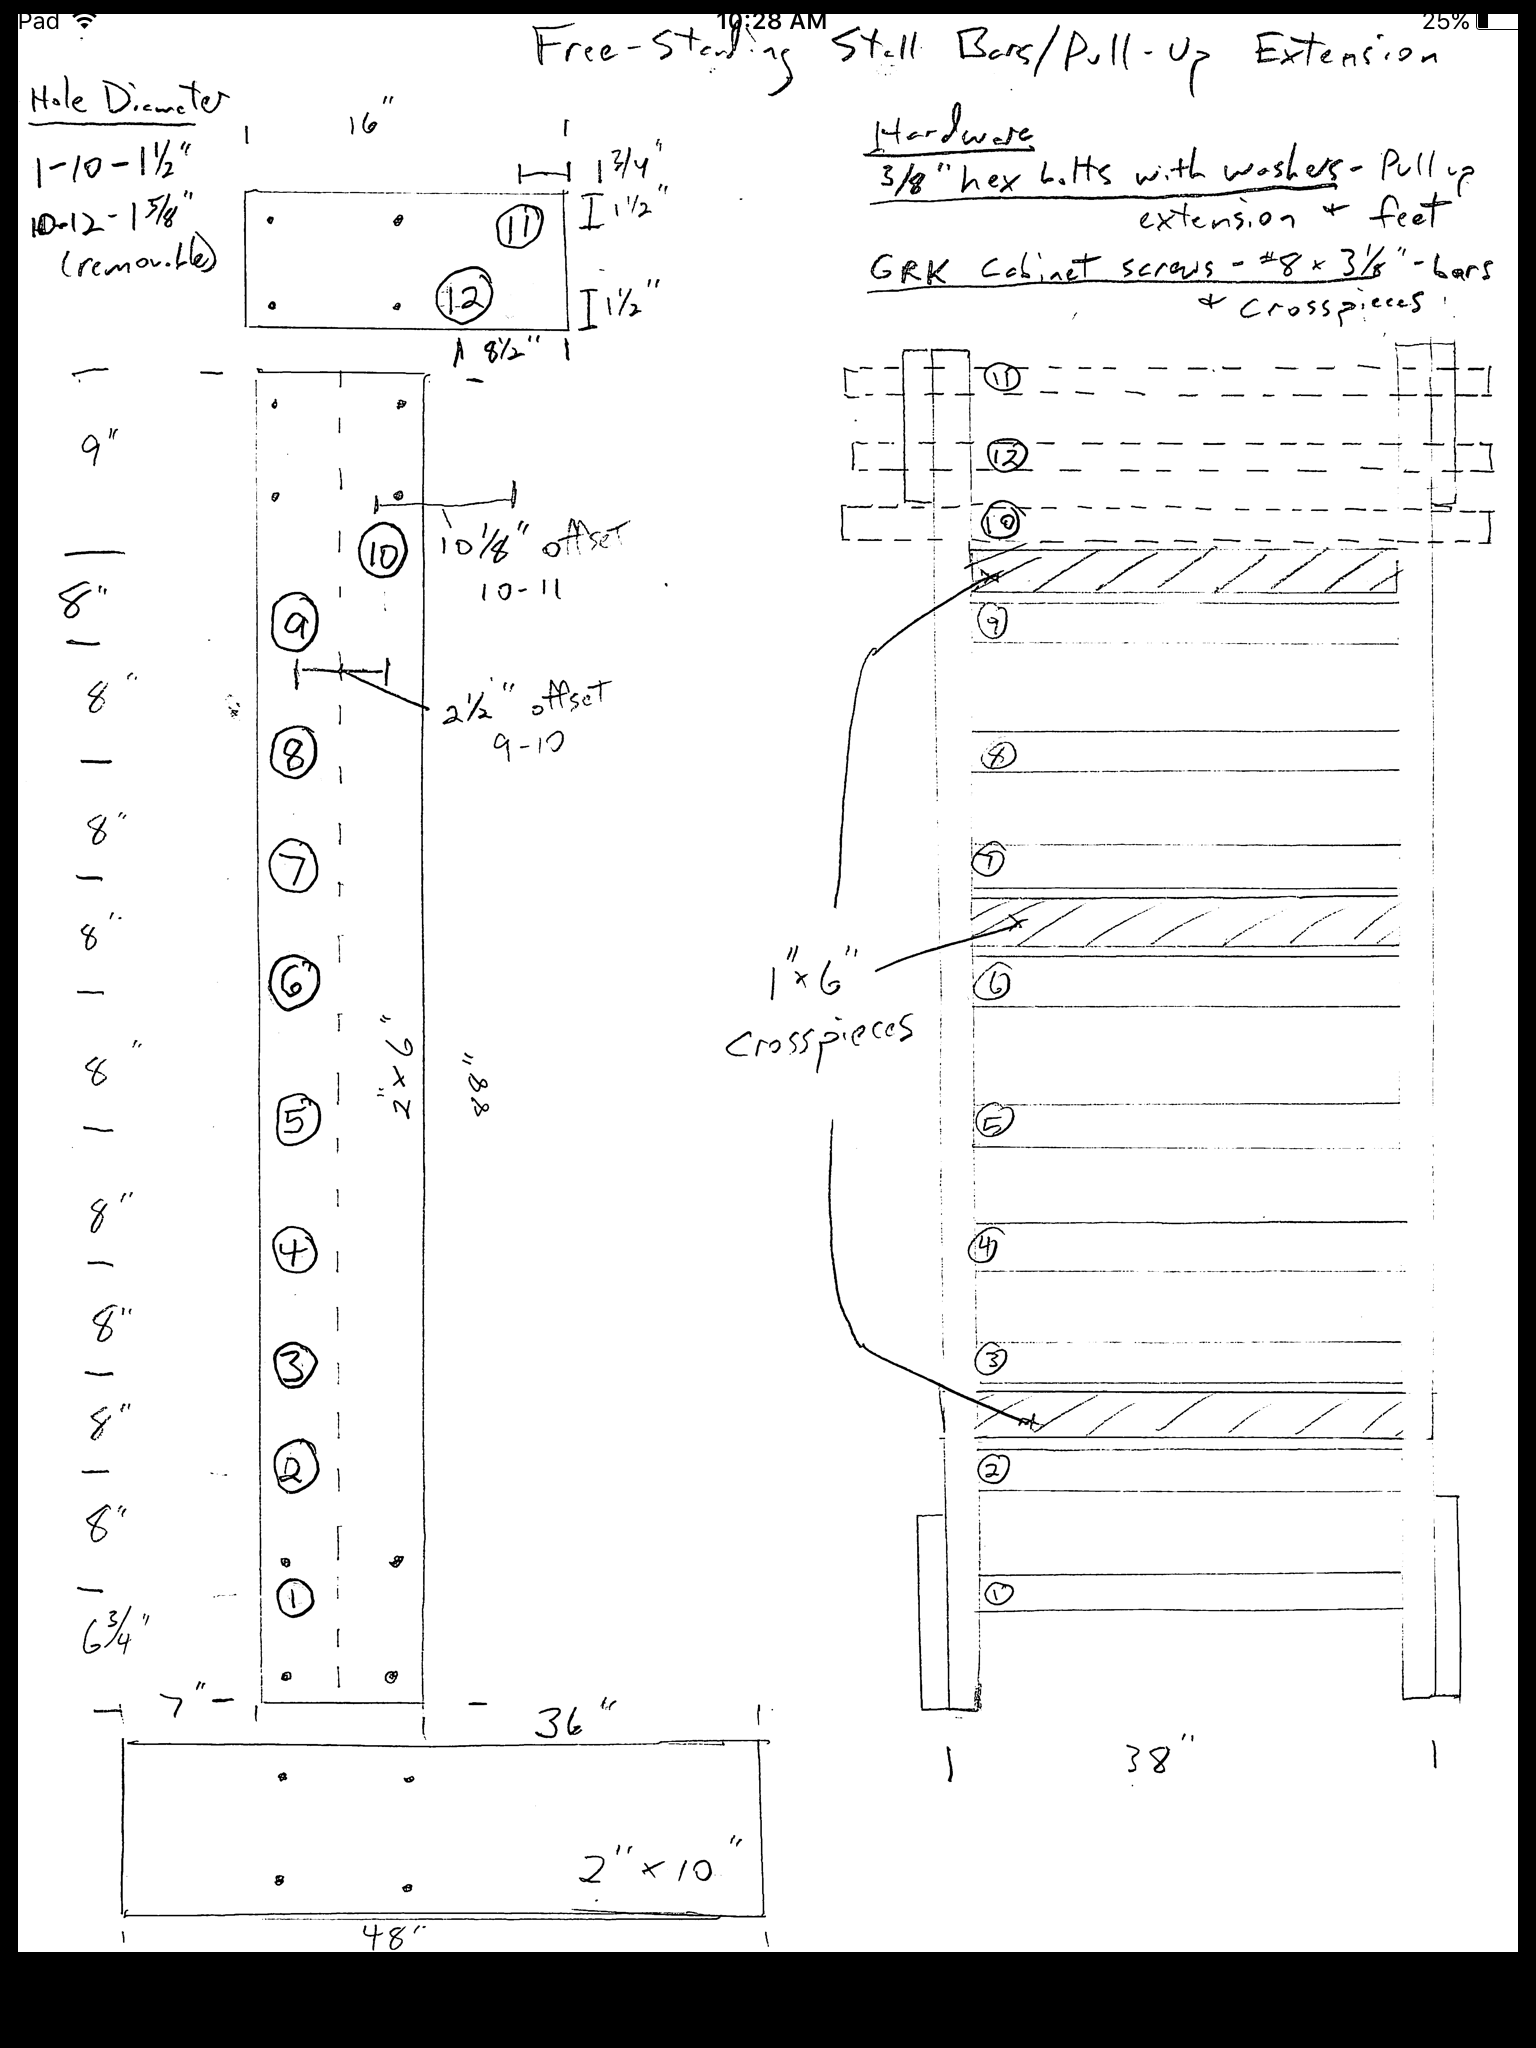 Free standing stall bars pull up bar plans page 2 for Free standing bar plans